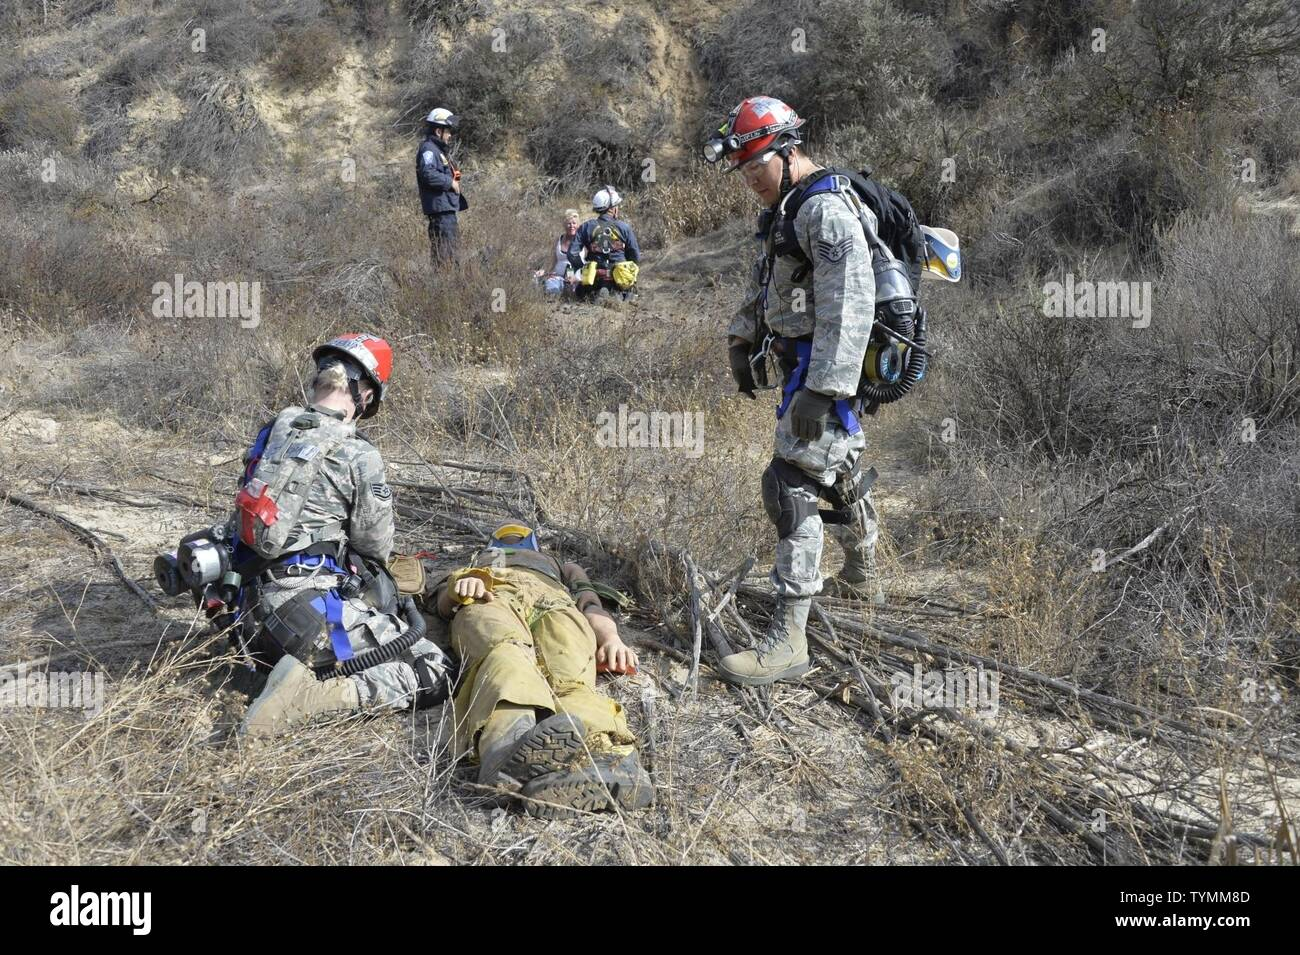 U.S. Air Force Staff Sgt. Lindsey Jennaty and Staff Sgt. Gerardo Munoz, search and extraction medics with the 144th Medical Detachment, provide aid to an injured victim at the Del Valle Regional Training Center Nov. 16, 2016 during Vigilant Guard, a disaster response exercise. The exercise took place Nov. 14-18, 2016, and called upon members of the California, Nevada and Hawaii National Guards and Federal Emergency Response Agency Region IX to respond to an earthquake in Nevada and subsequent aftershock in California. Stock Photo